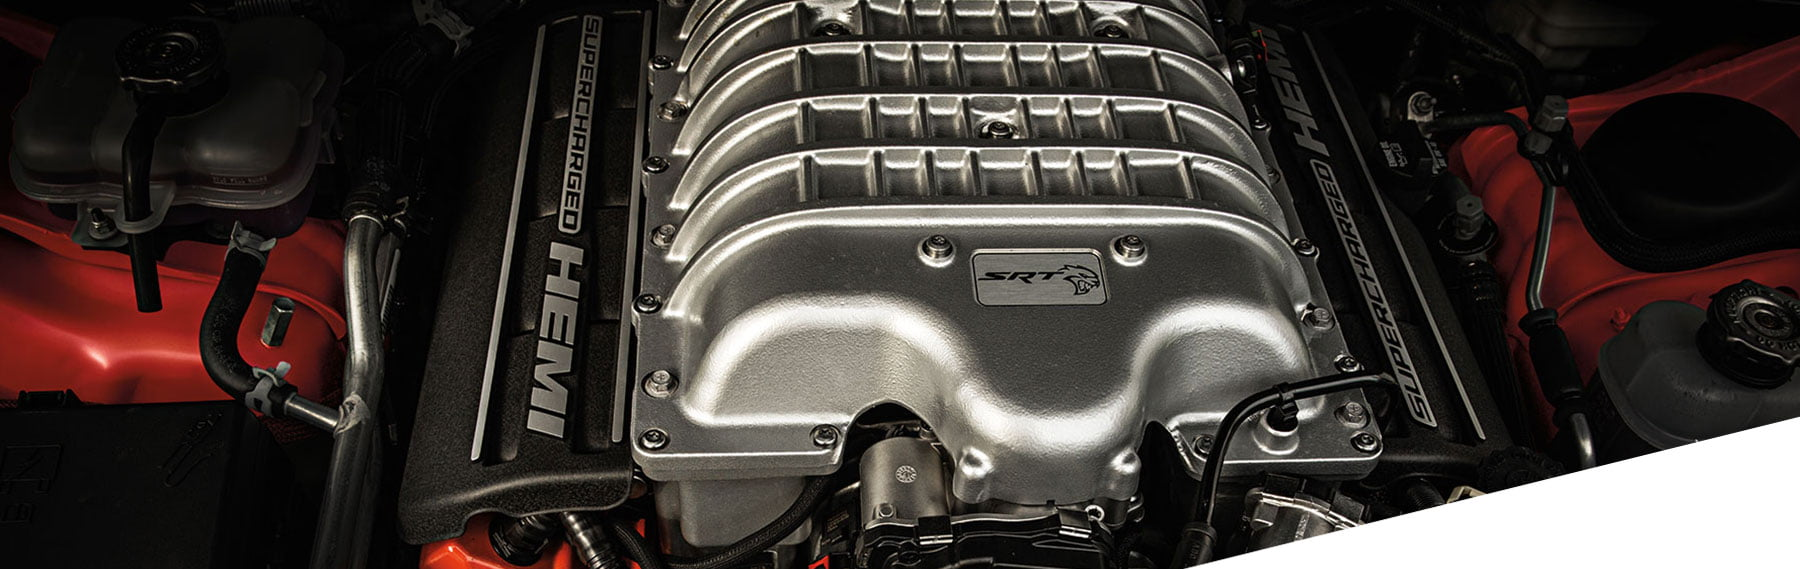 2019 dodge 6.l supercharger hellcat engine